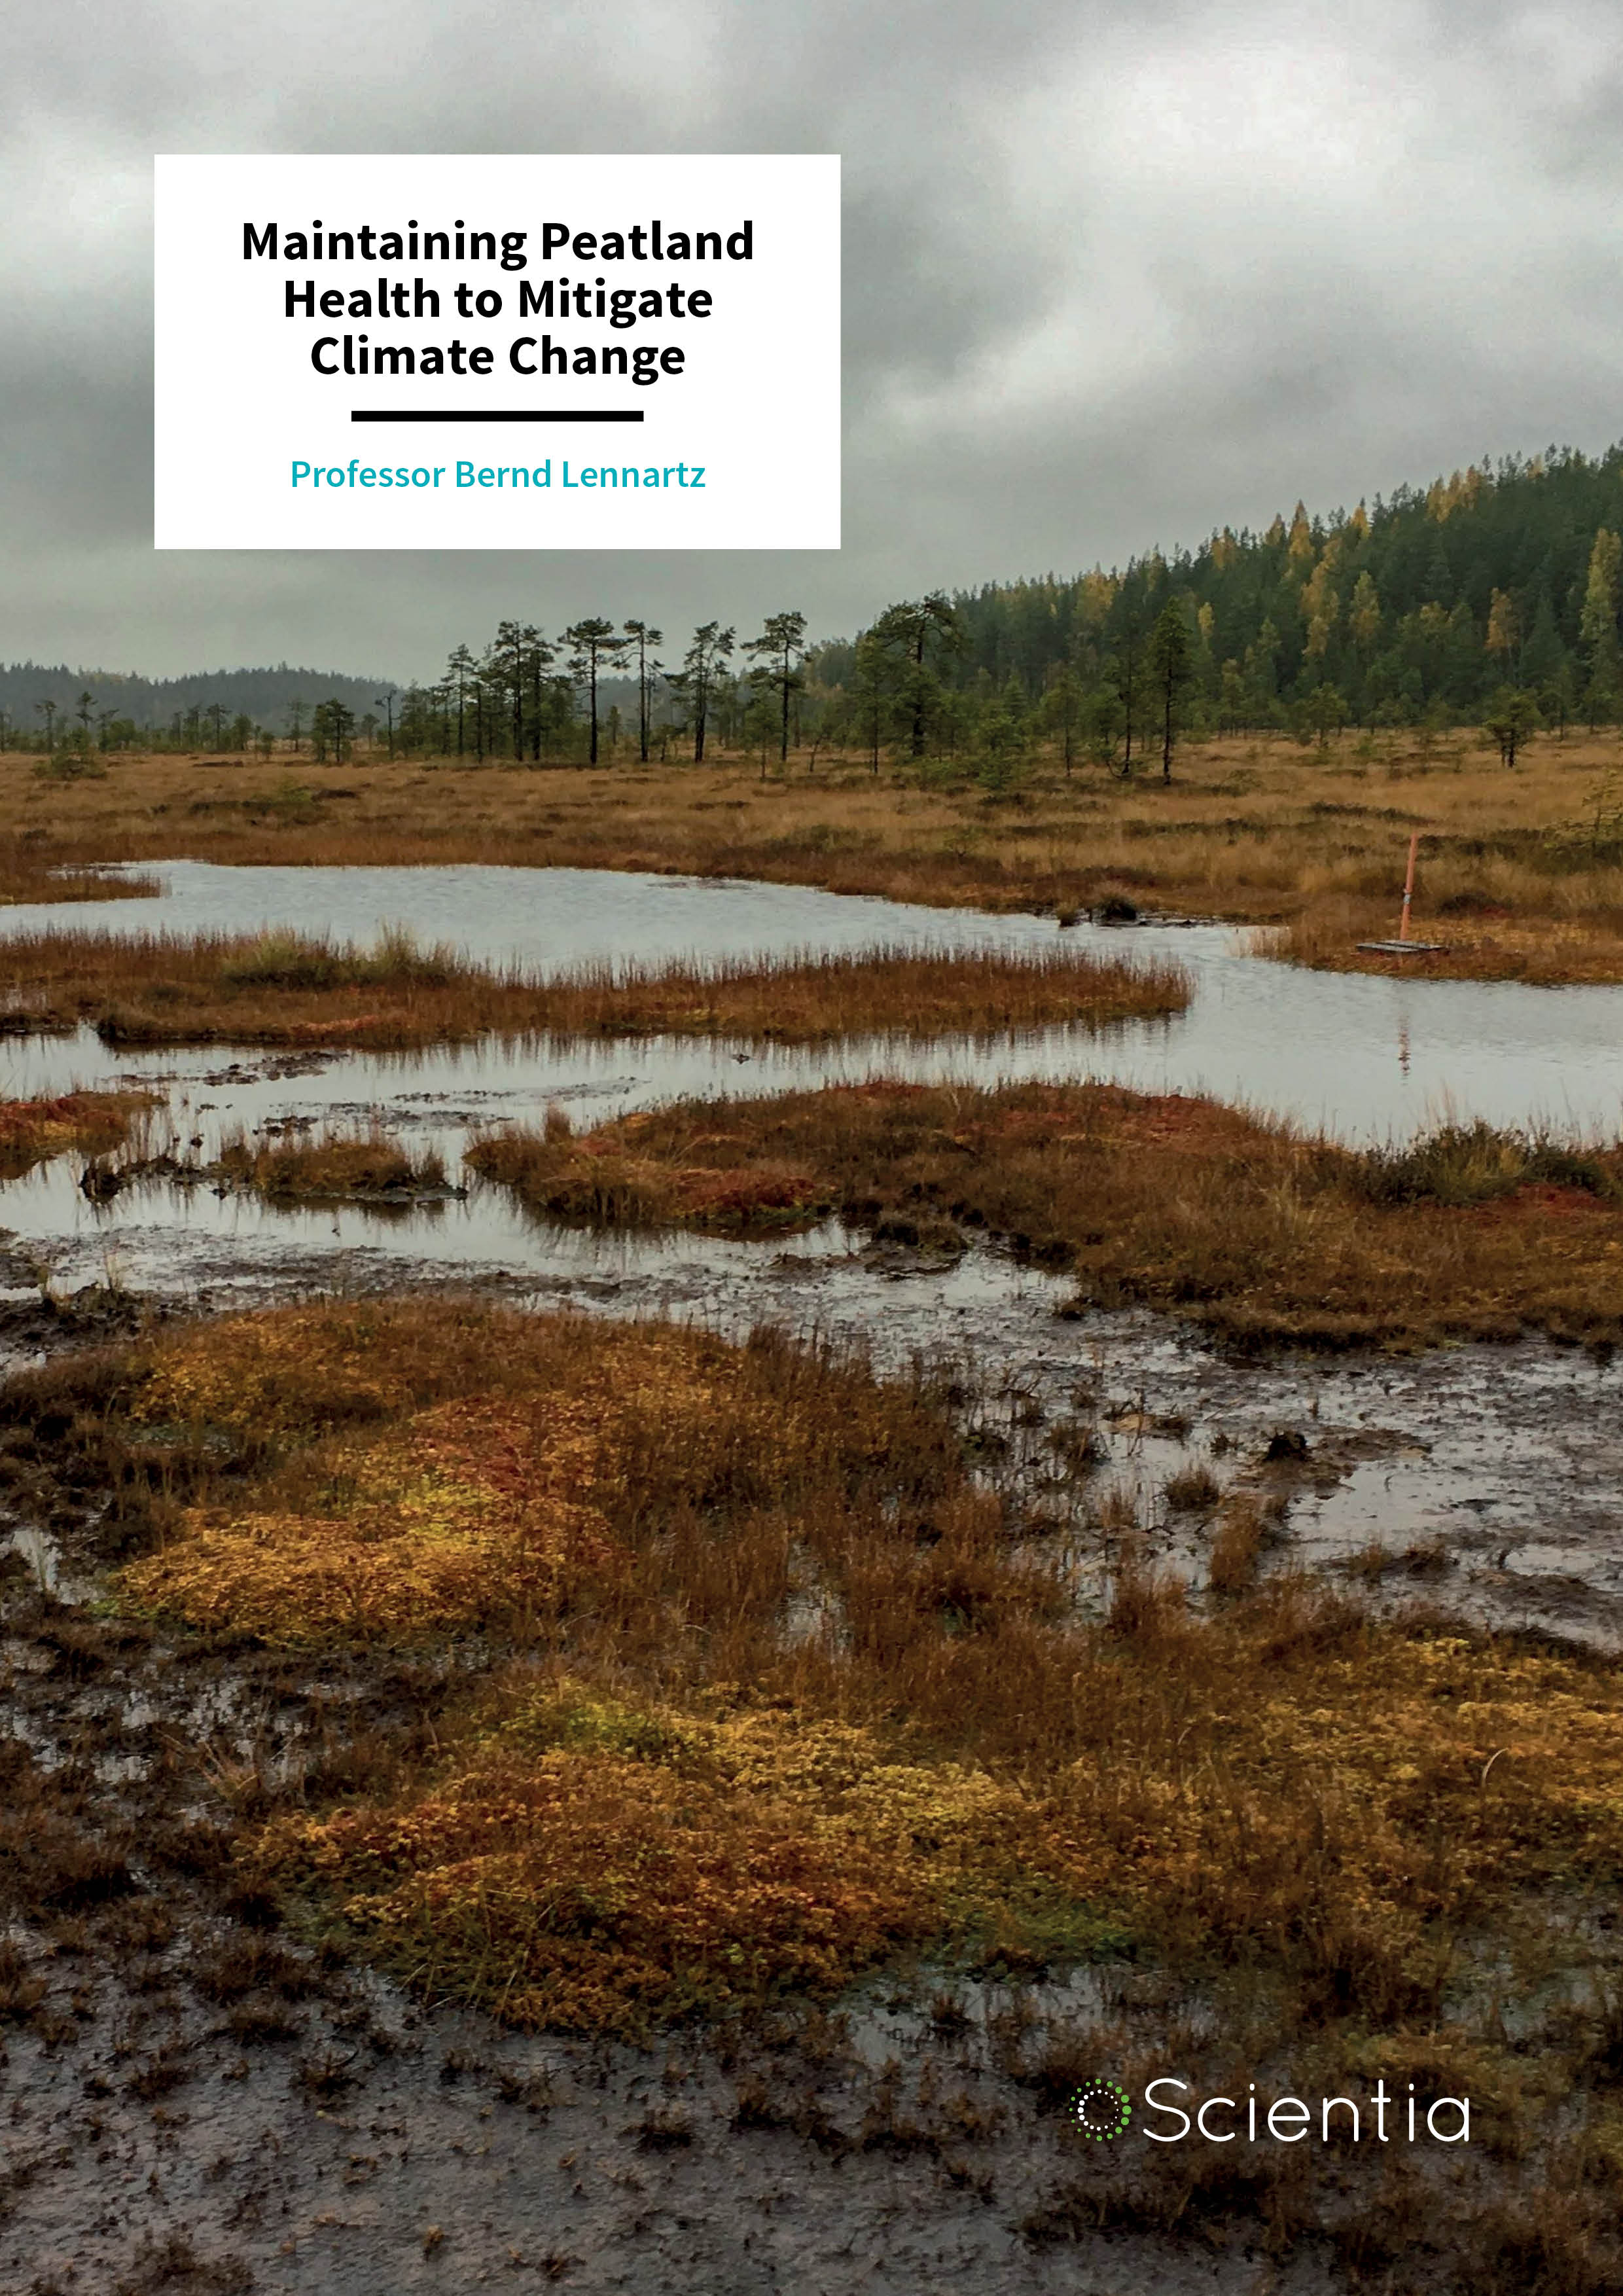 Dr Bernd Lennartz – Maintaining Peatland Health to Mitigate Climate Change